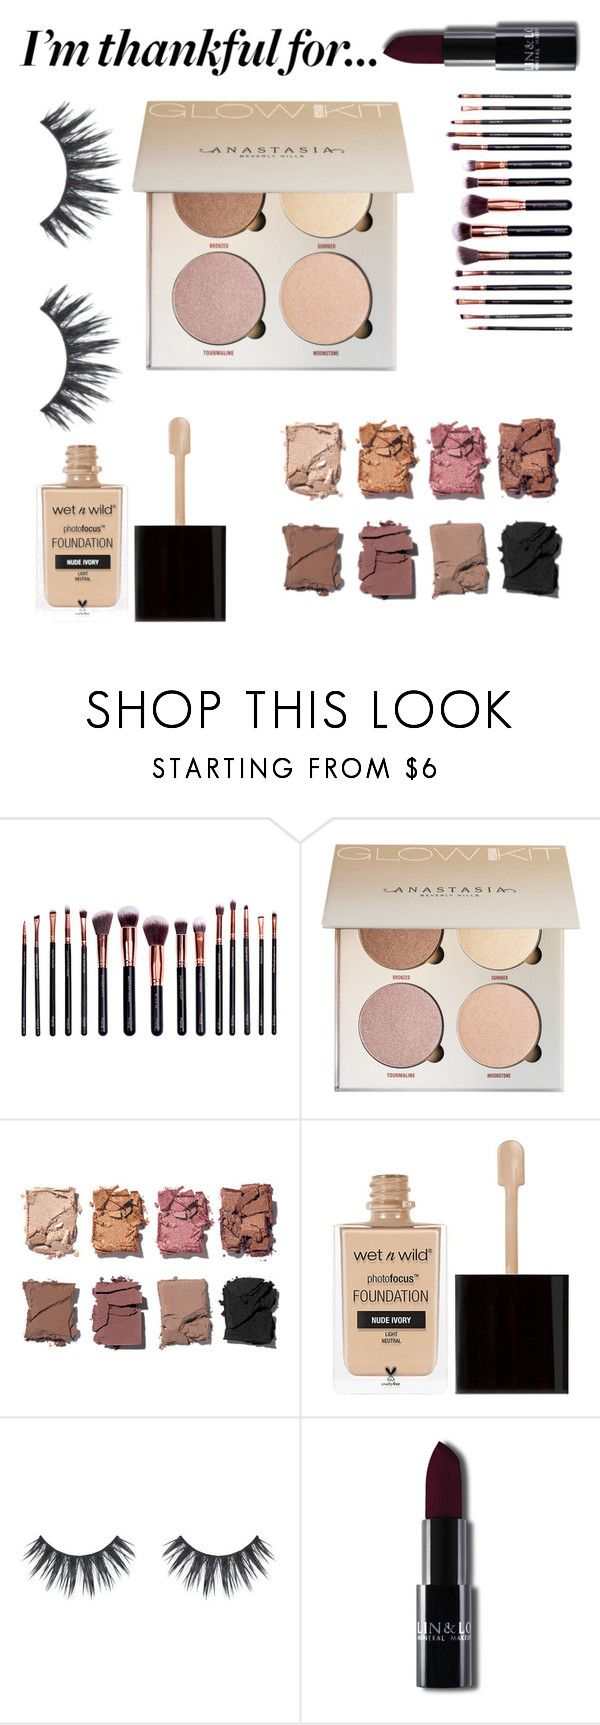 """""""I am Thankful for ..... EVERYTHING!!"""" by nhillseast ❤ liked on Polyvore featuring M.O.T.D Cosmetics, Illamasqua and Wet n Wild"""